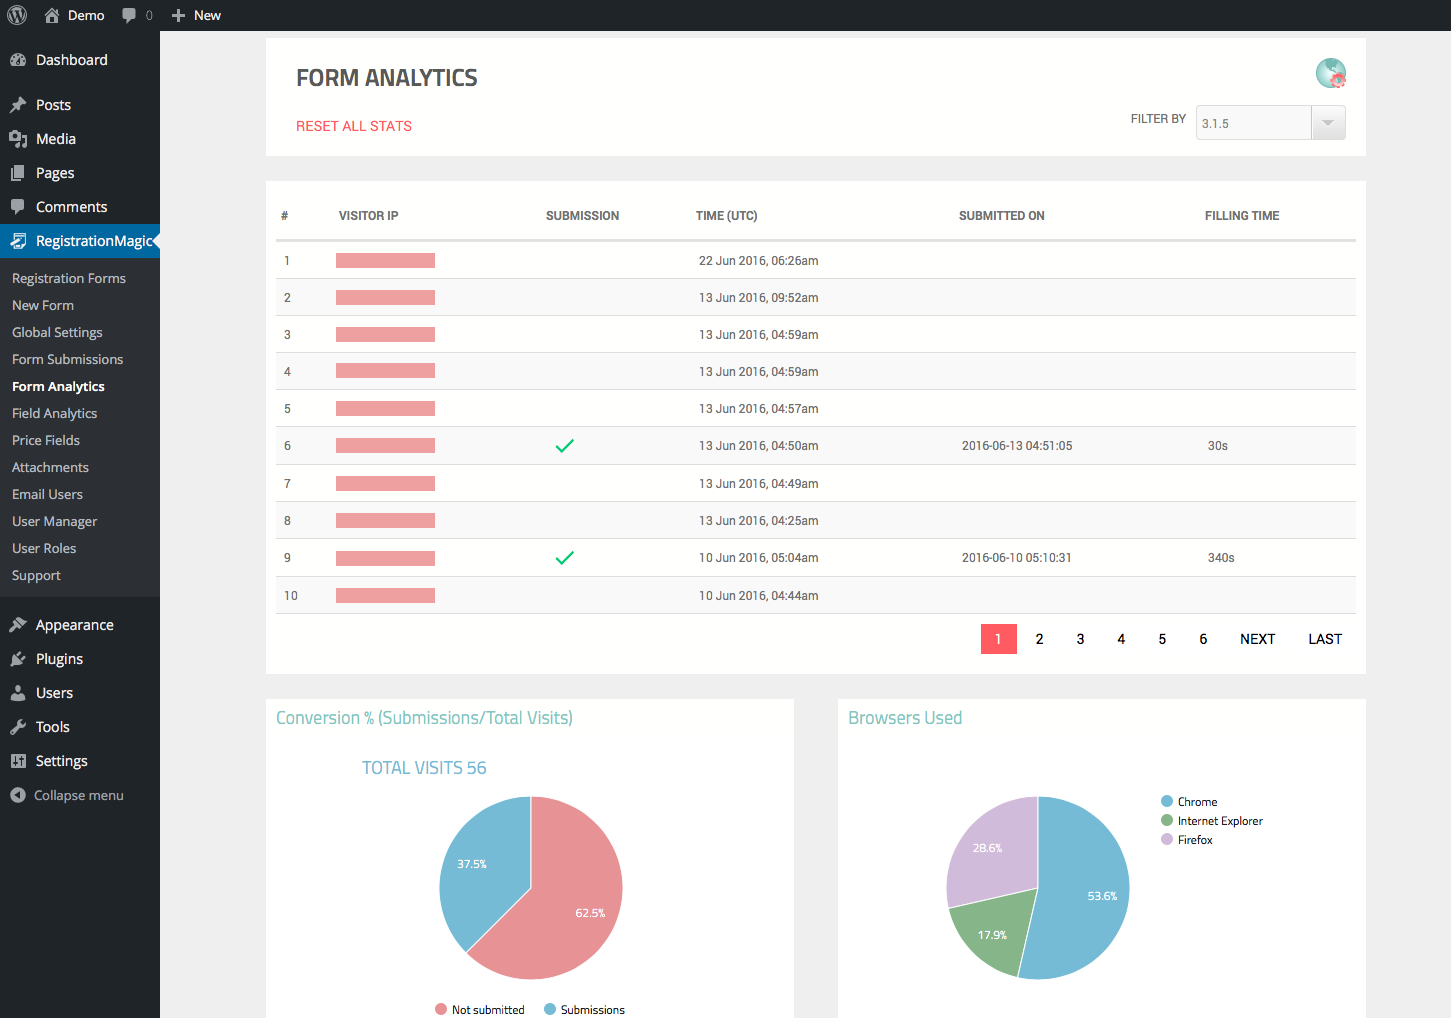 Form Analytics. IPs hidden for privacy.